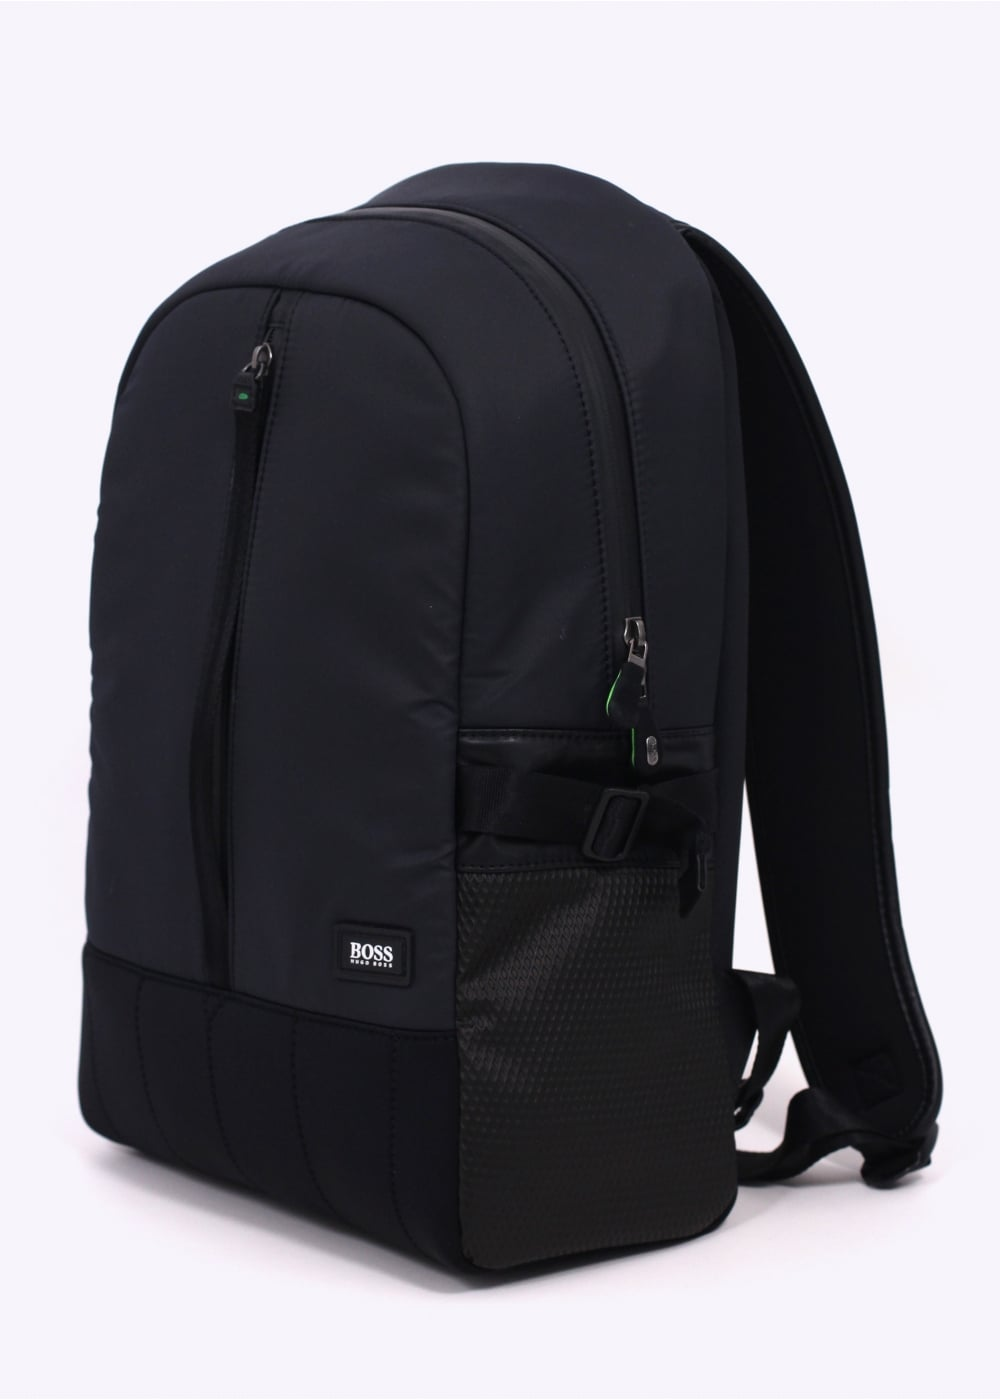 Hugo Boss Green Mission Backpack - Dark Blue - Hugo Boss ... Hugo Boss Green Shoes